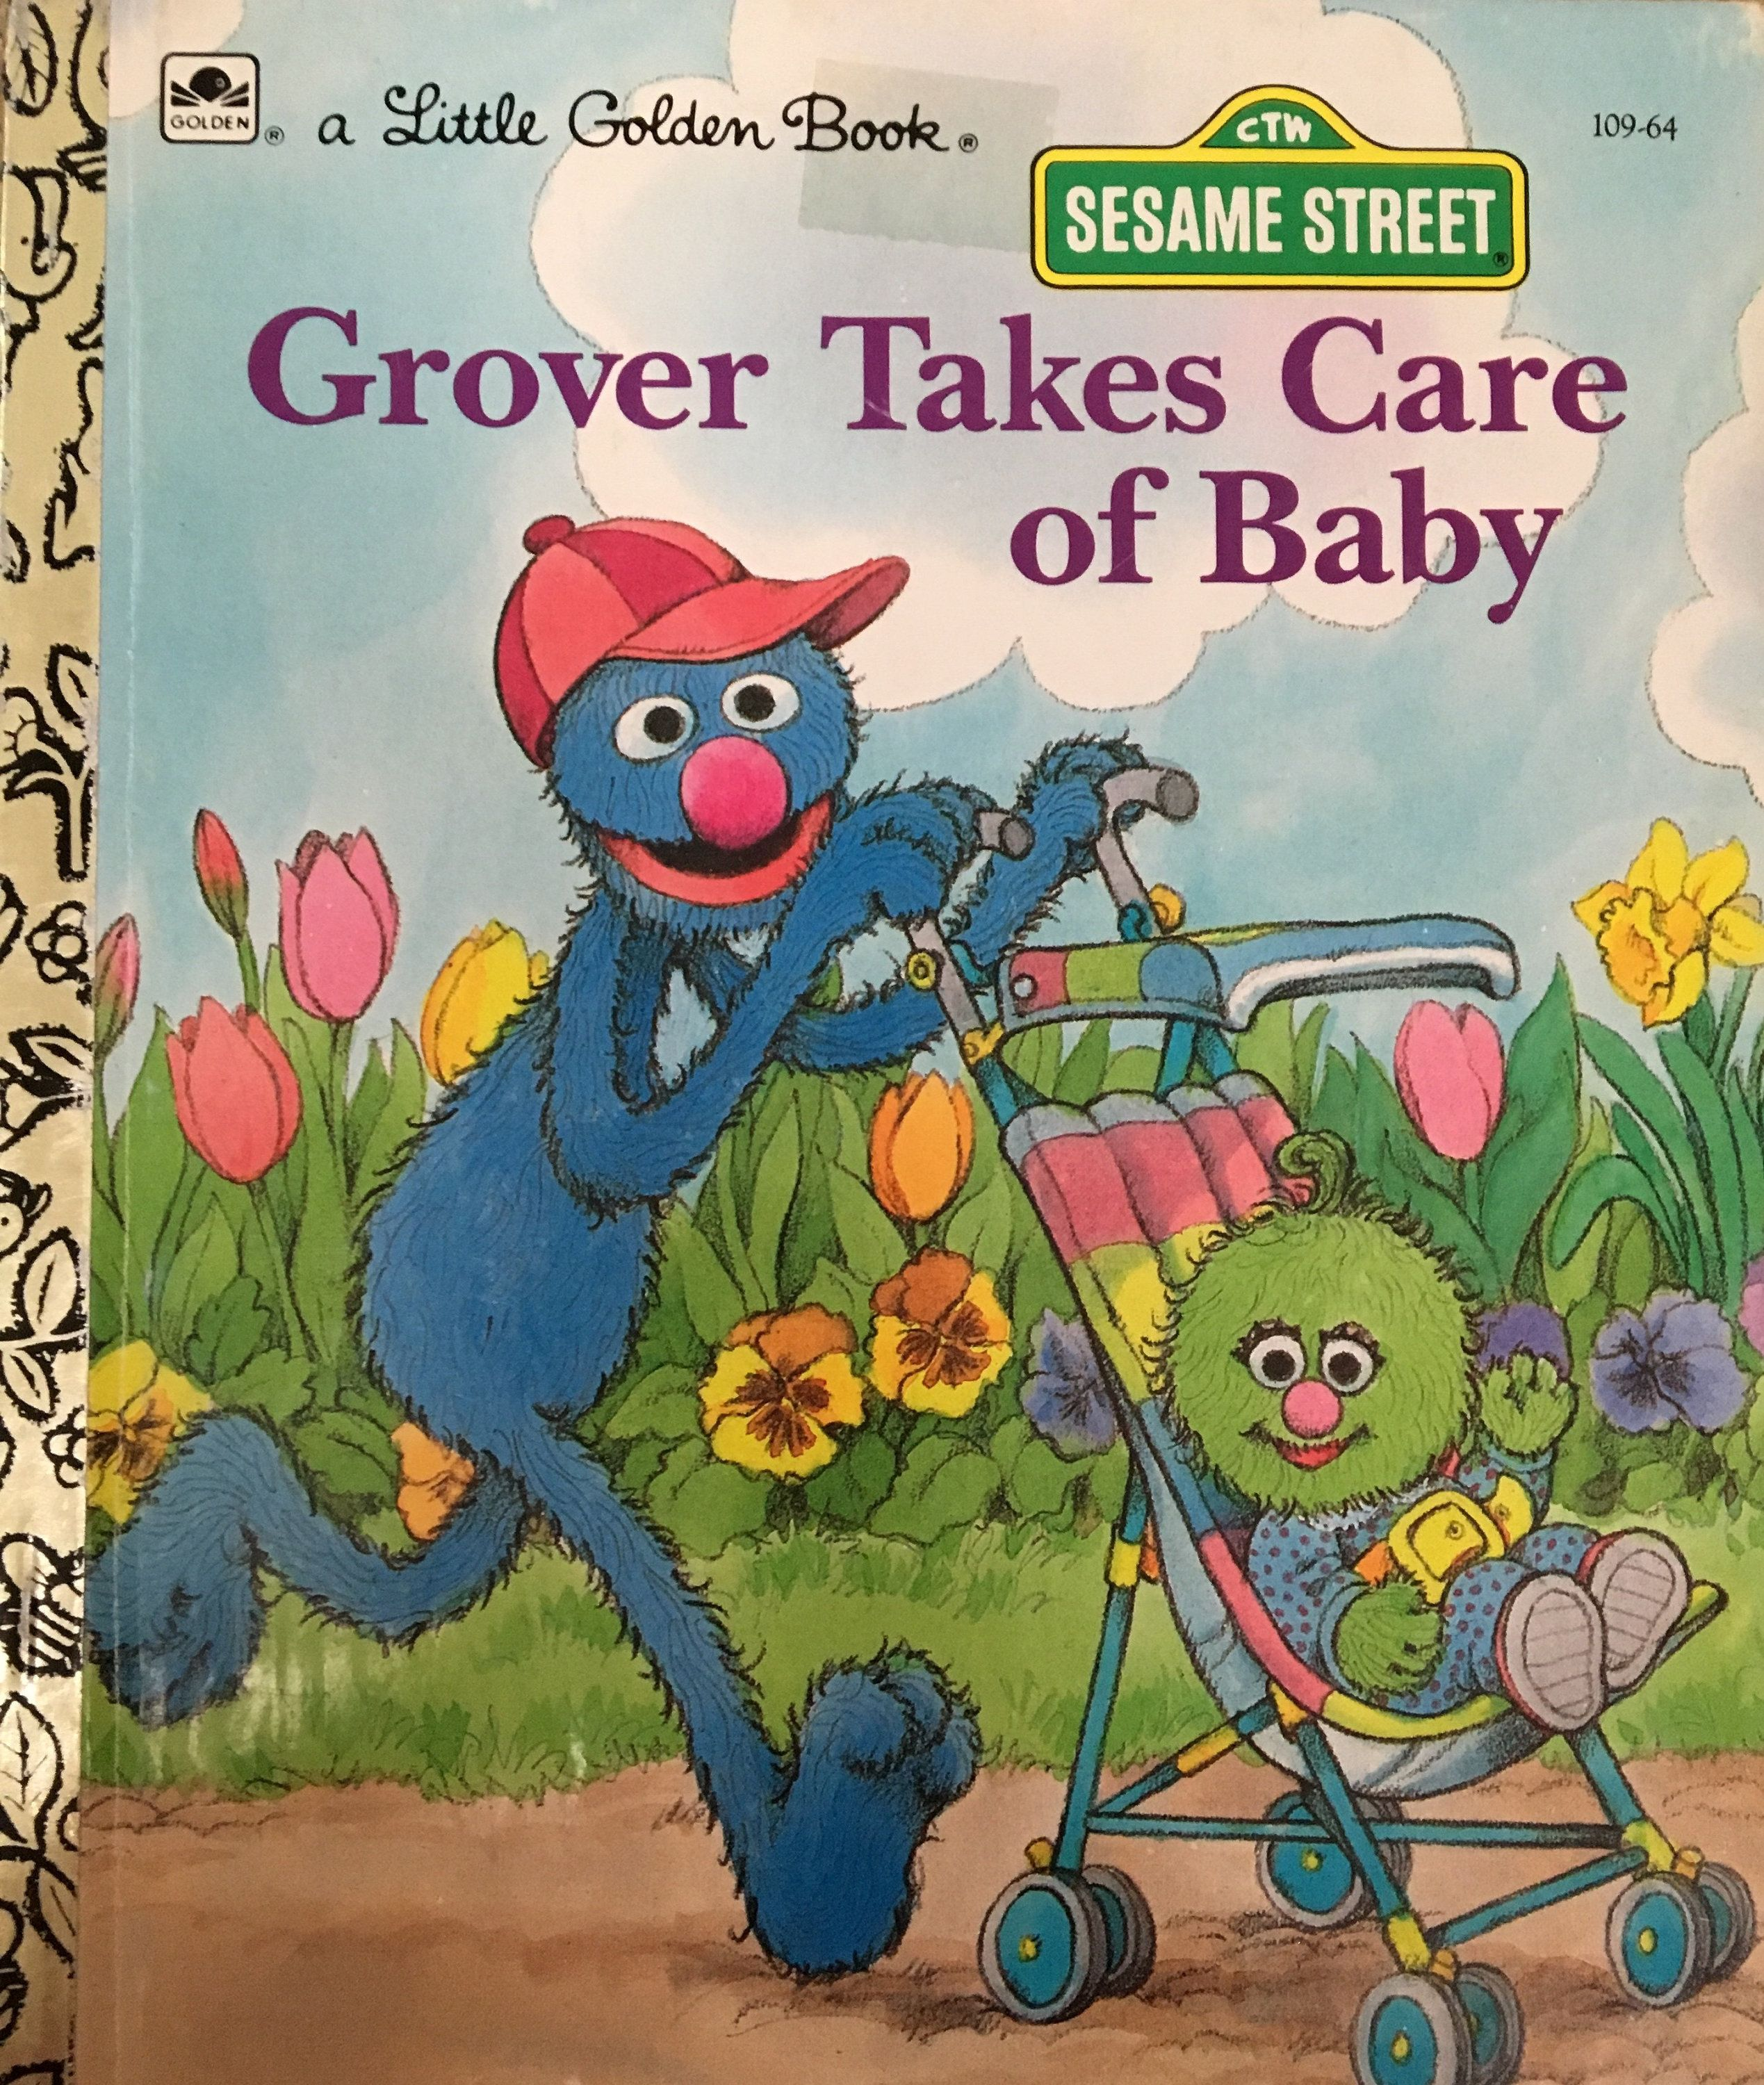 Vintage sesame street little golden book grover takes care of baby 109 64 1991 edition baby shower gift childrens hardcover by mothermuse on etsy